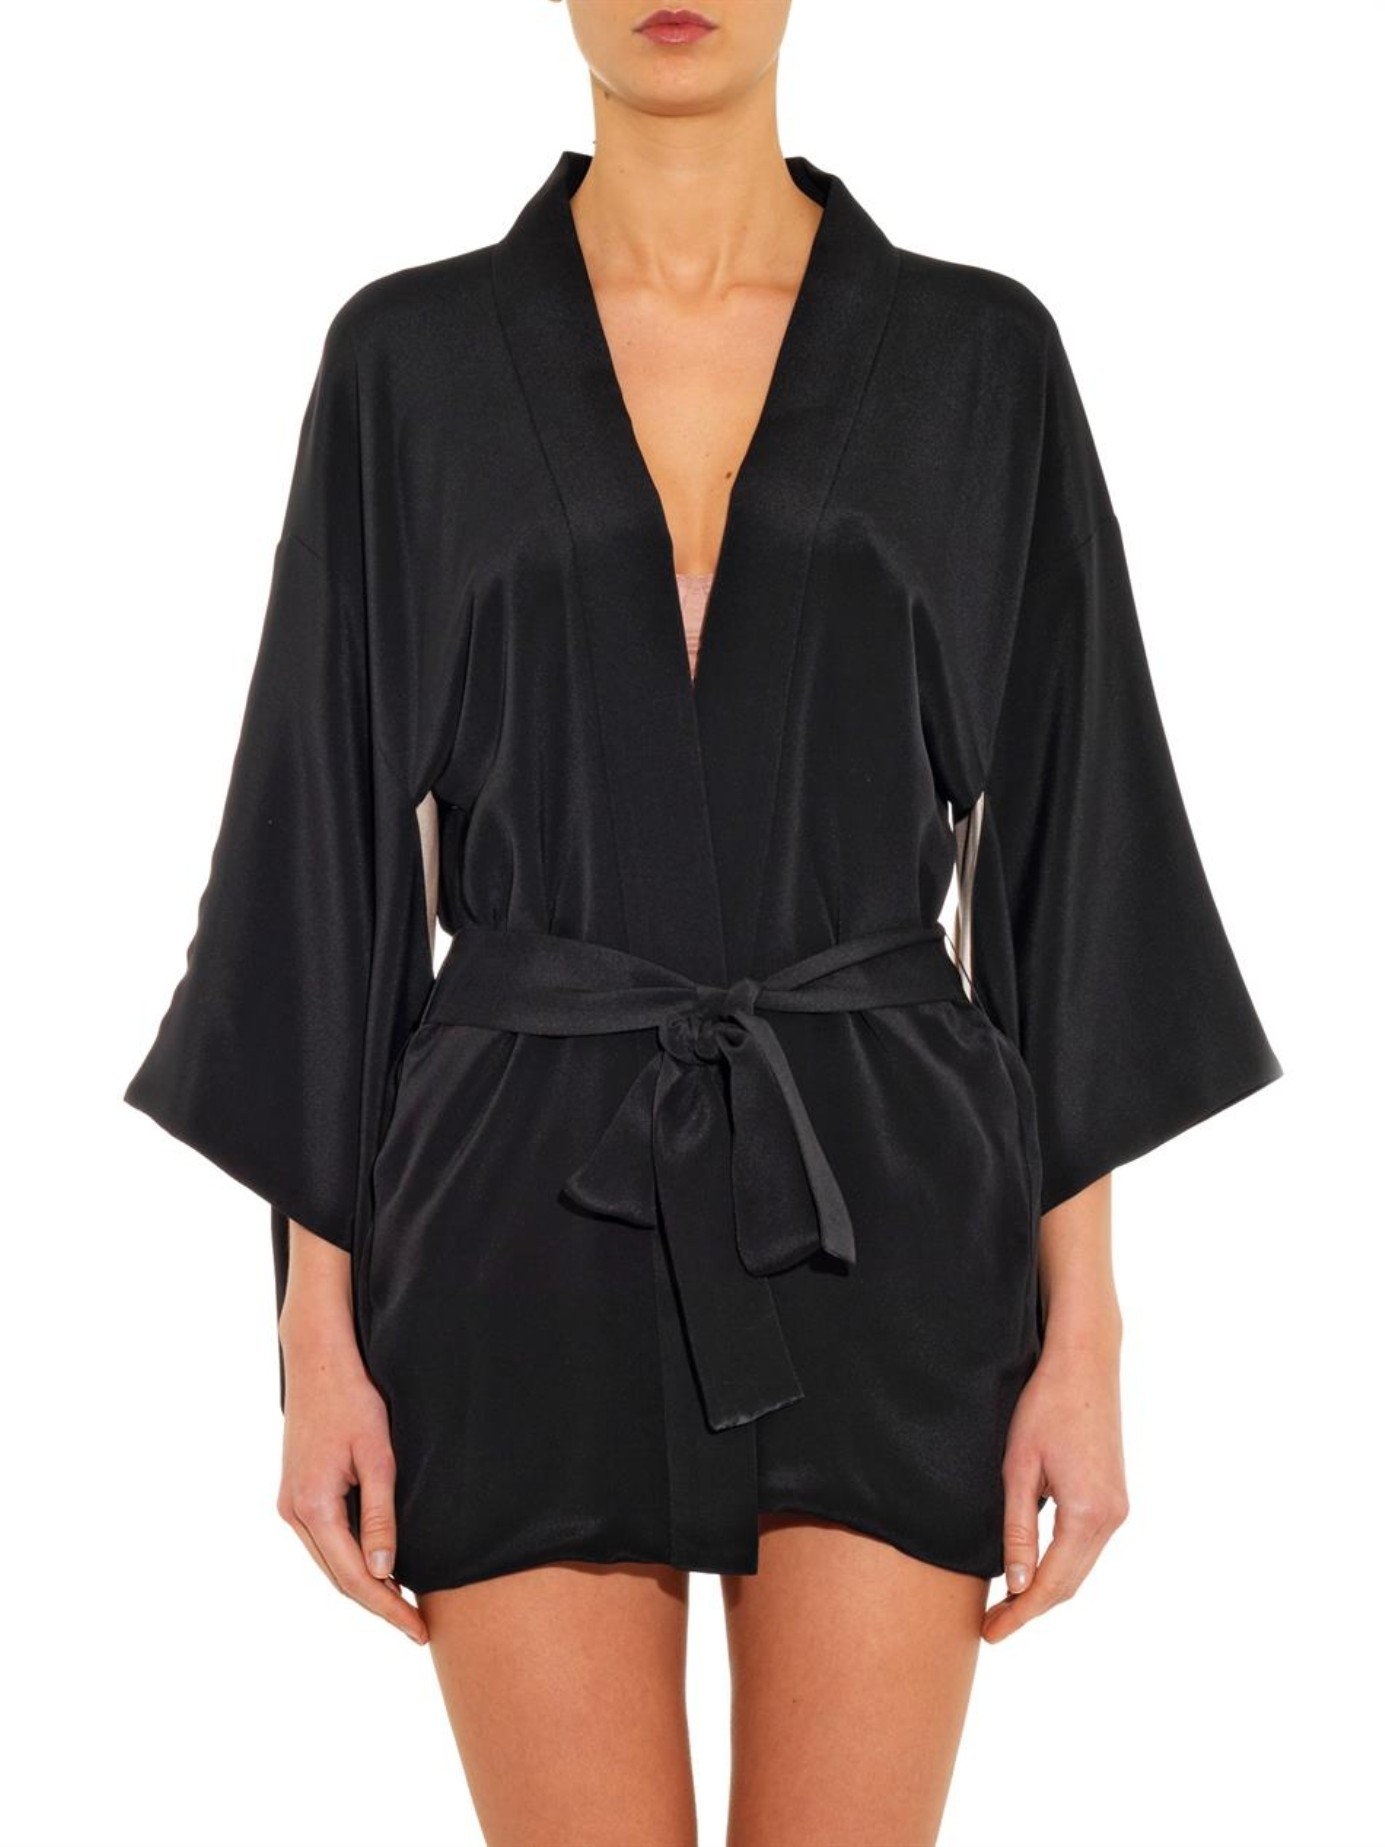 A flirty kimono robe over some lingerie gets you in the mood for date night; a terry cloth robe is the workhorse you need day-to-day. Whichever way you're headed, robes get you headed in the right direction in pure comfort.